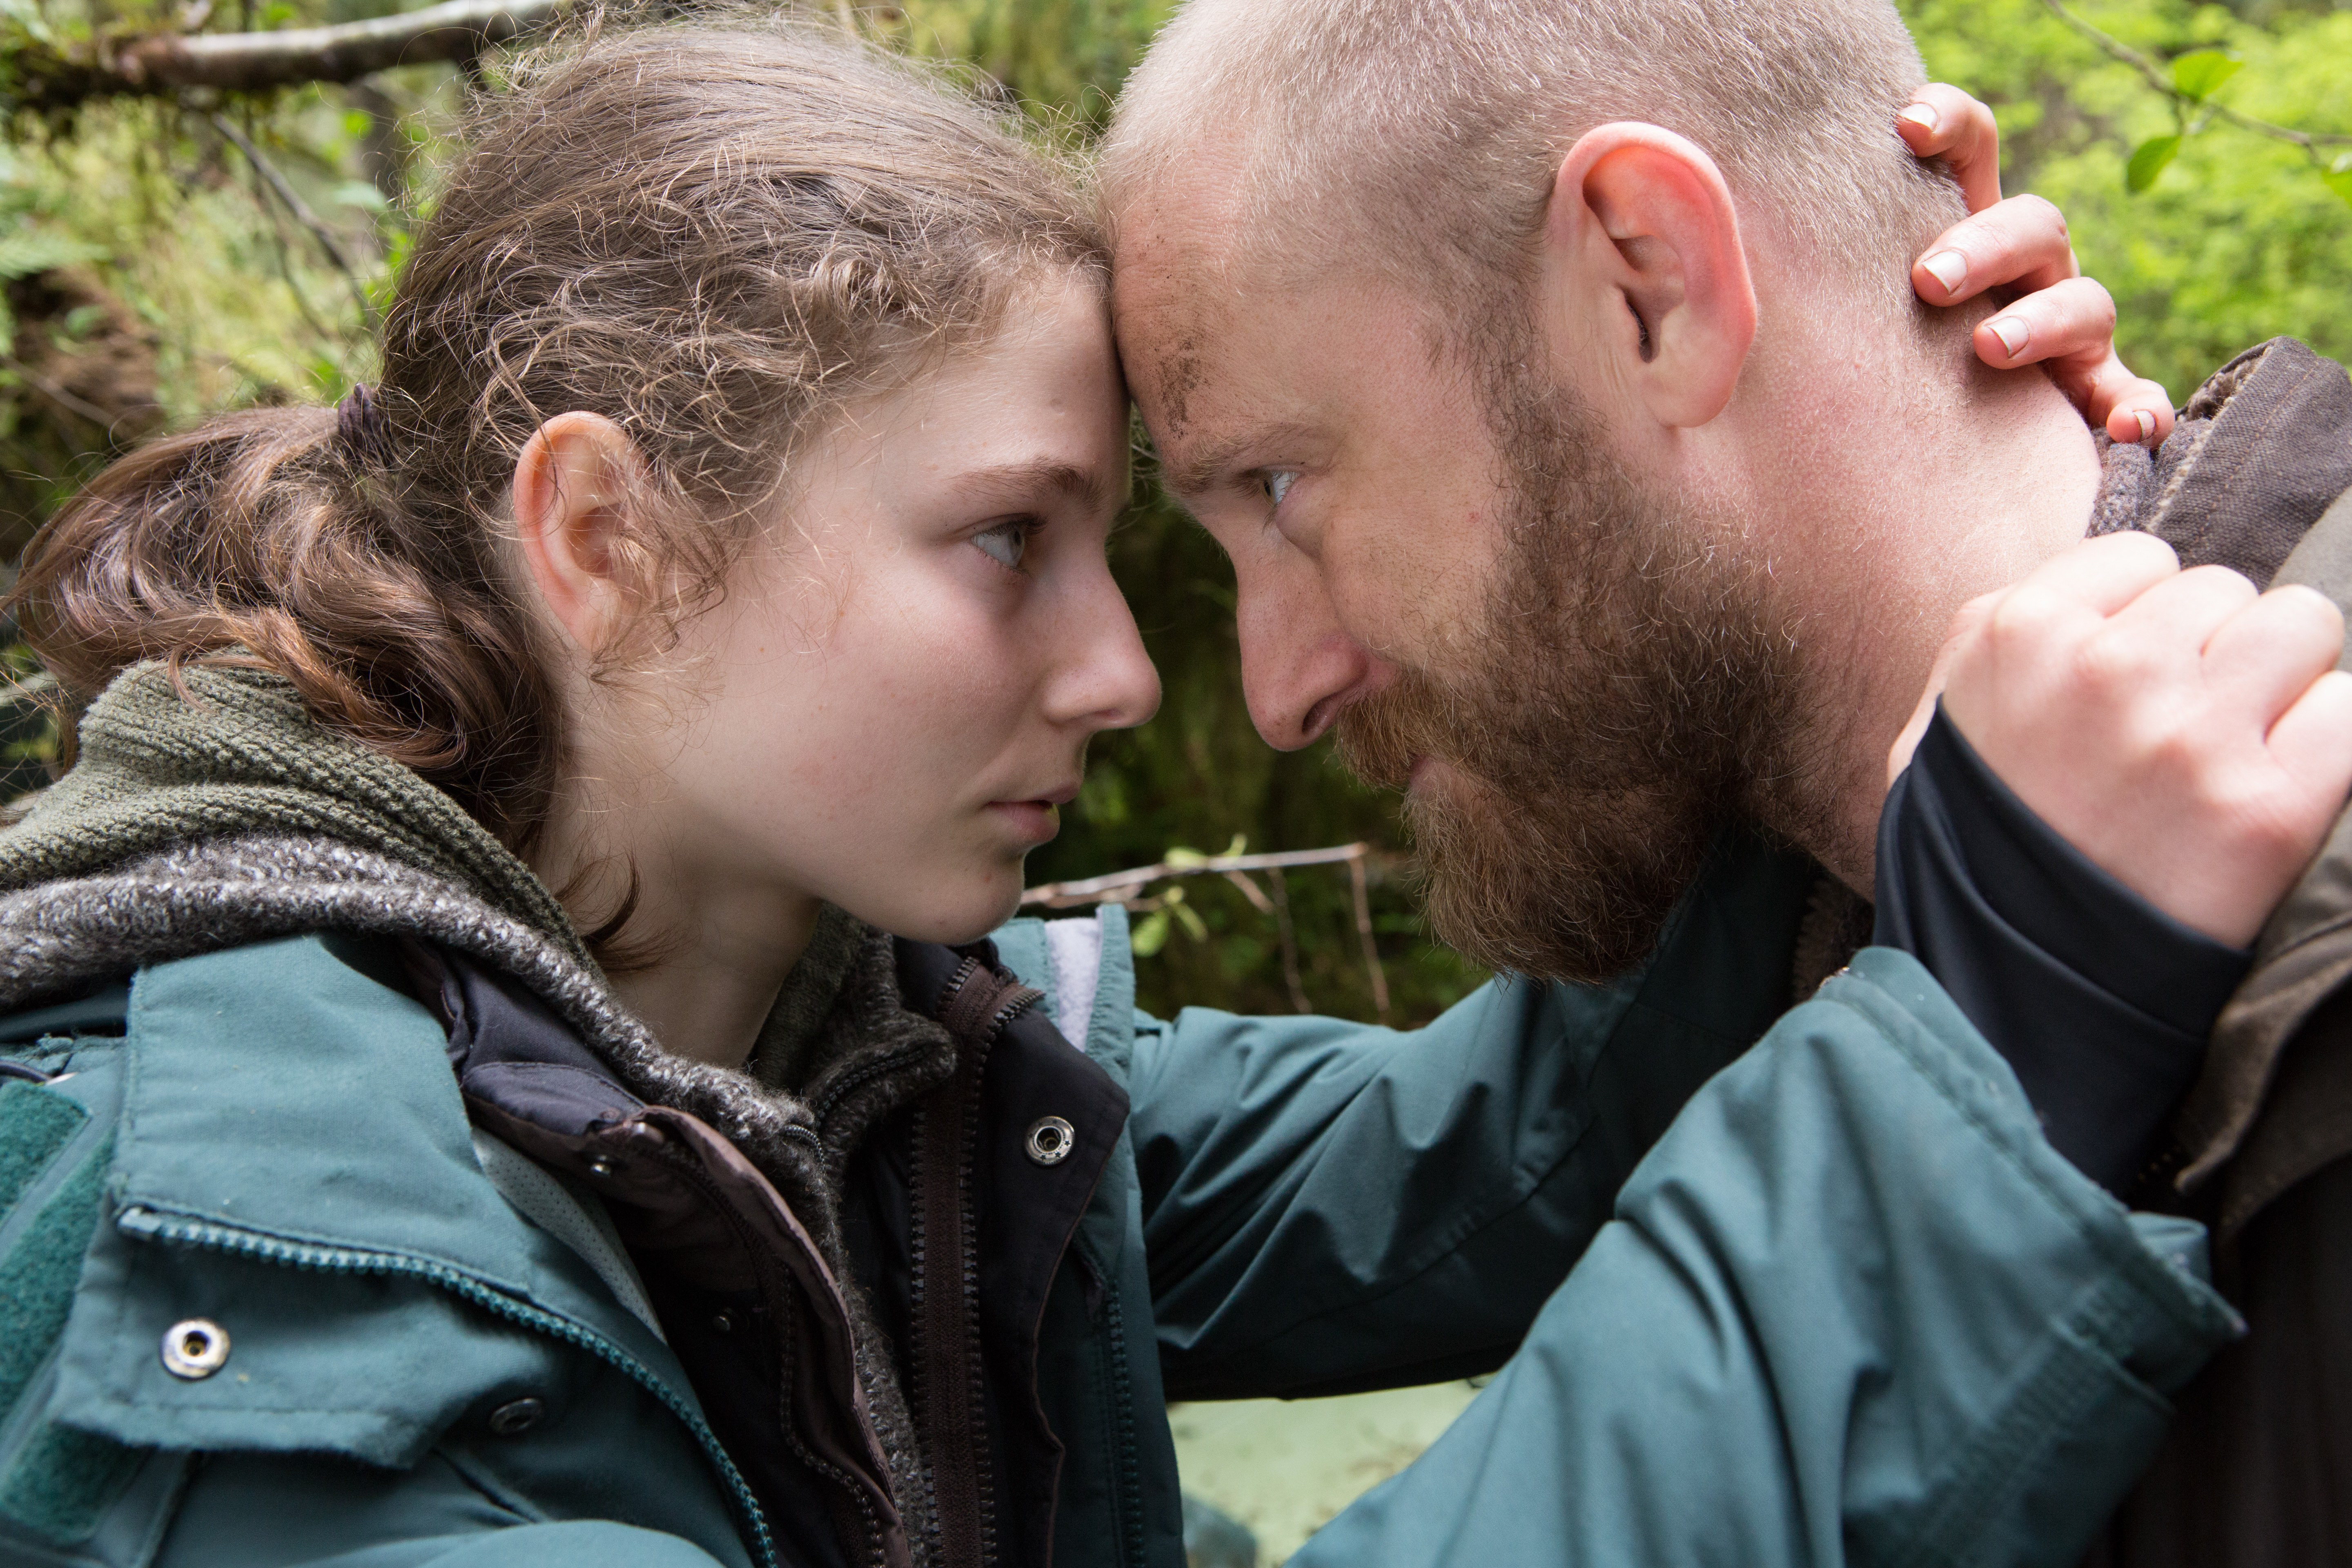 Thomasin McKenzie and Ben Foster appear in <i>Untitled Debra Granik Project</i> by Debra Granik, an official selection of the Premieres program at the 2018 Sundance Film Festival. Courtesy of Sundance Institute | photo by Scott Green. All photos are copyrighted and may be used by press only for the purpose of news or editorial coverage of Sundance Institute programs. Photos must be accompanied by a credit to the photographer and/or 'Courtesy of Sundance Institute.' Unauthorized use, alteration, reproduction or sale of logos and/or photos is strictly prohibited.